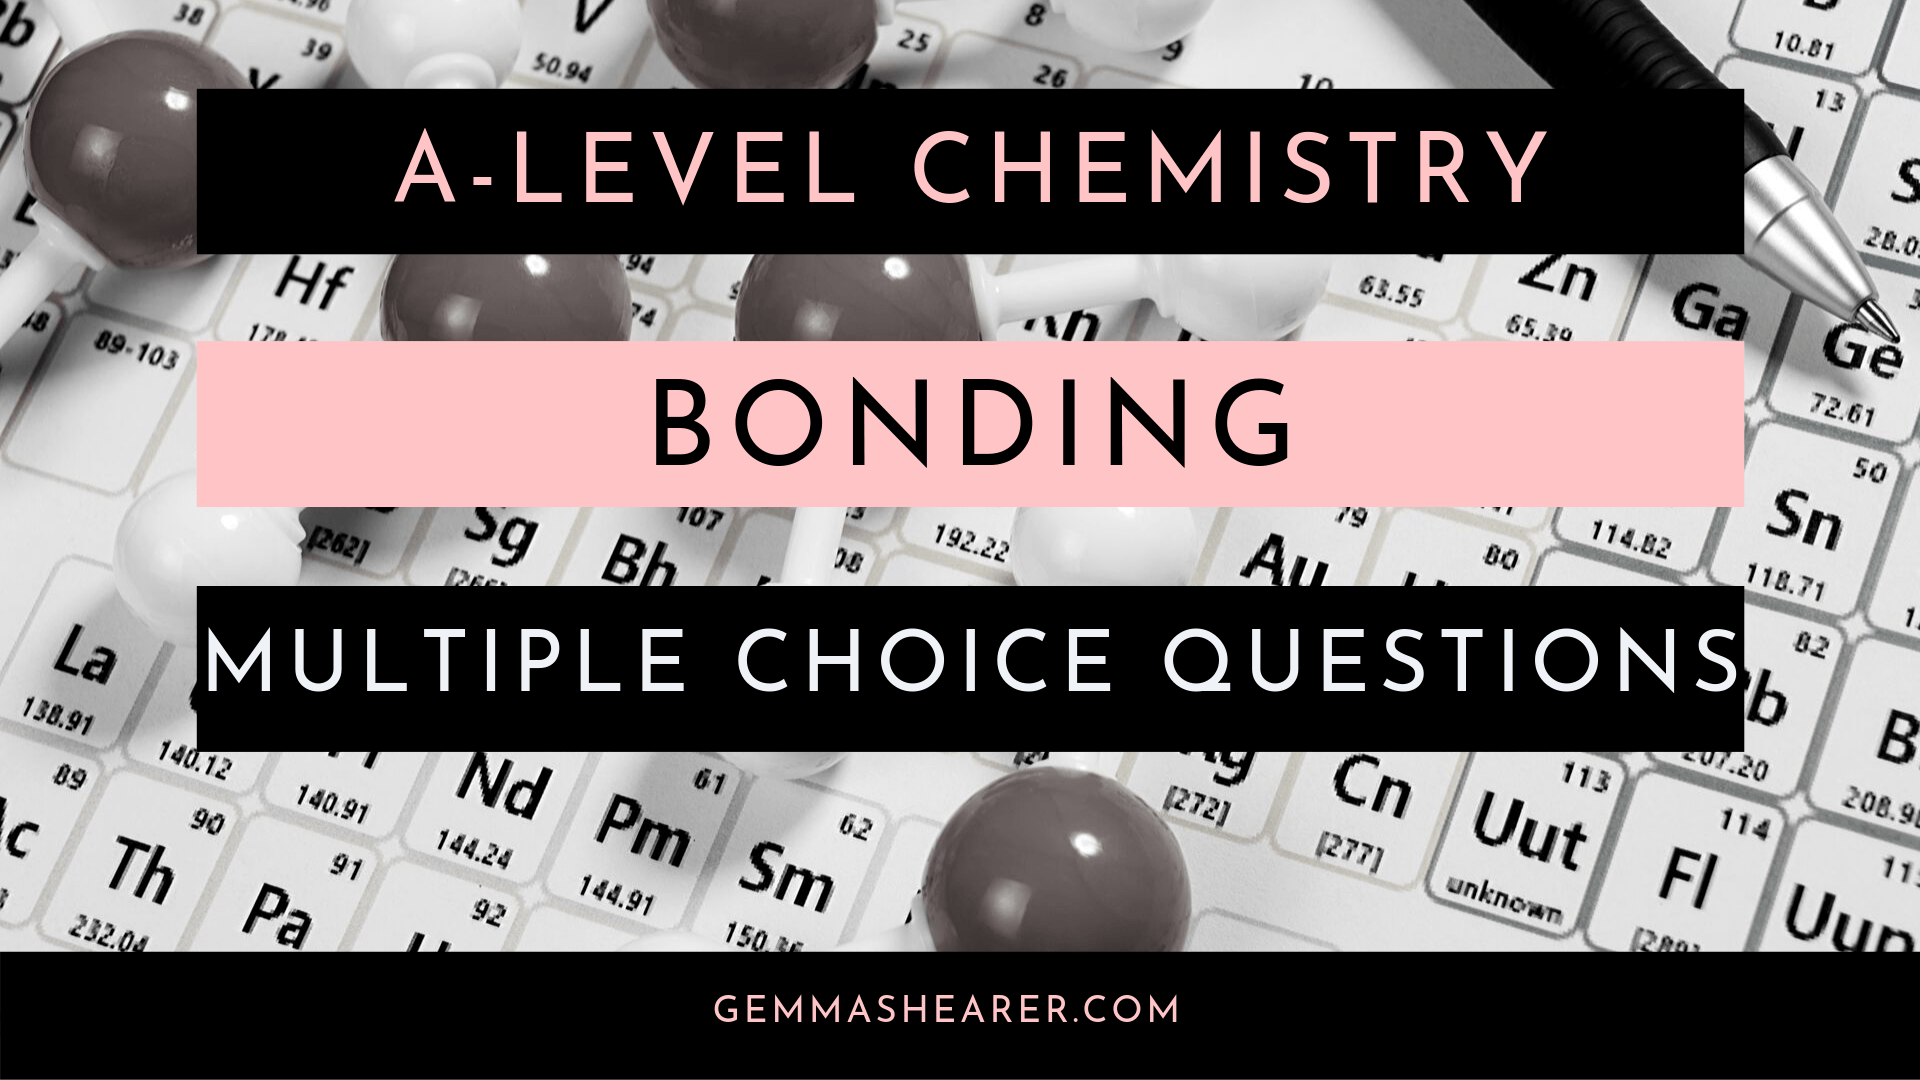 A-level chemistry bonding multiple choice questions